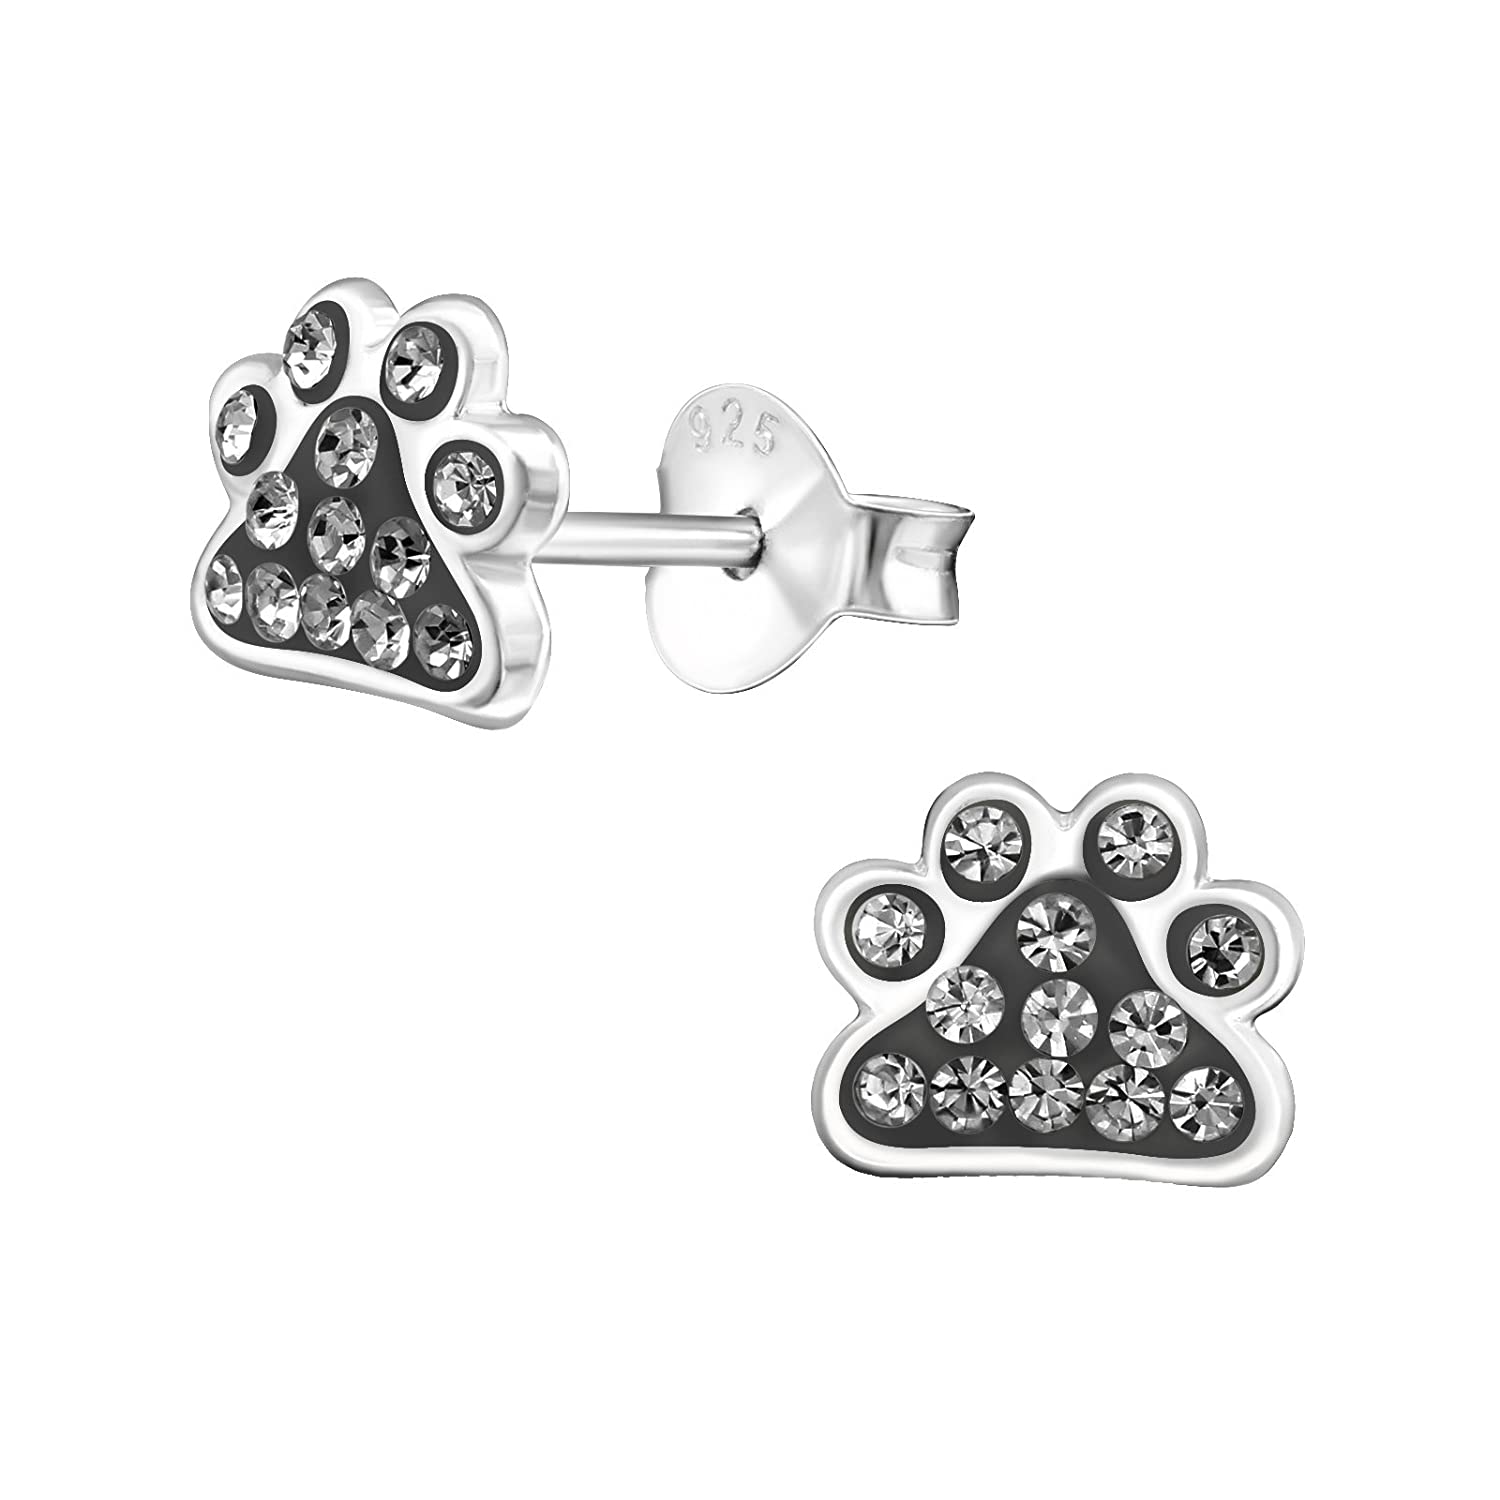 Laimons Womens Stud Earrings with Glittery Design Small 925 Sterling Silver Grey